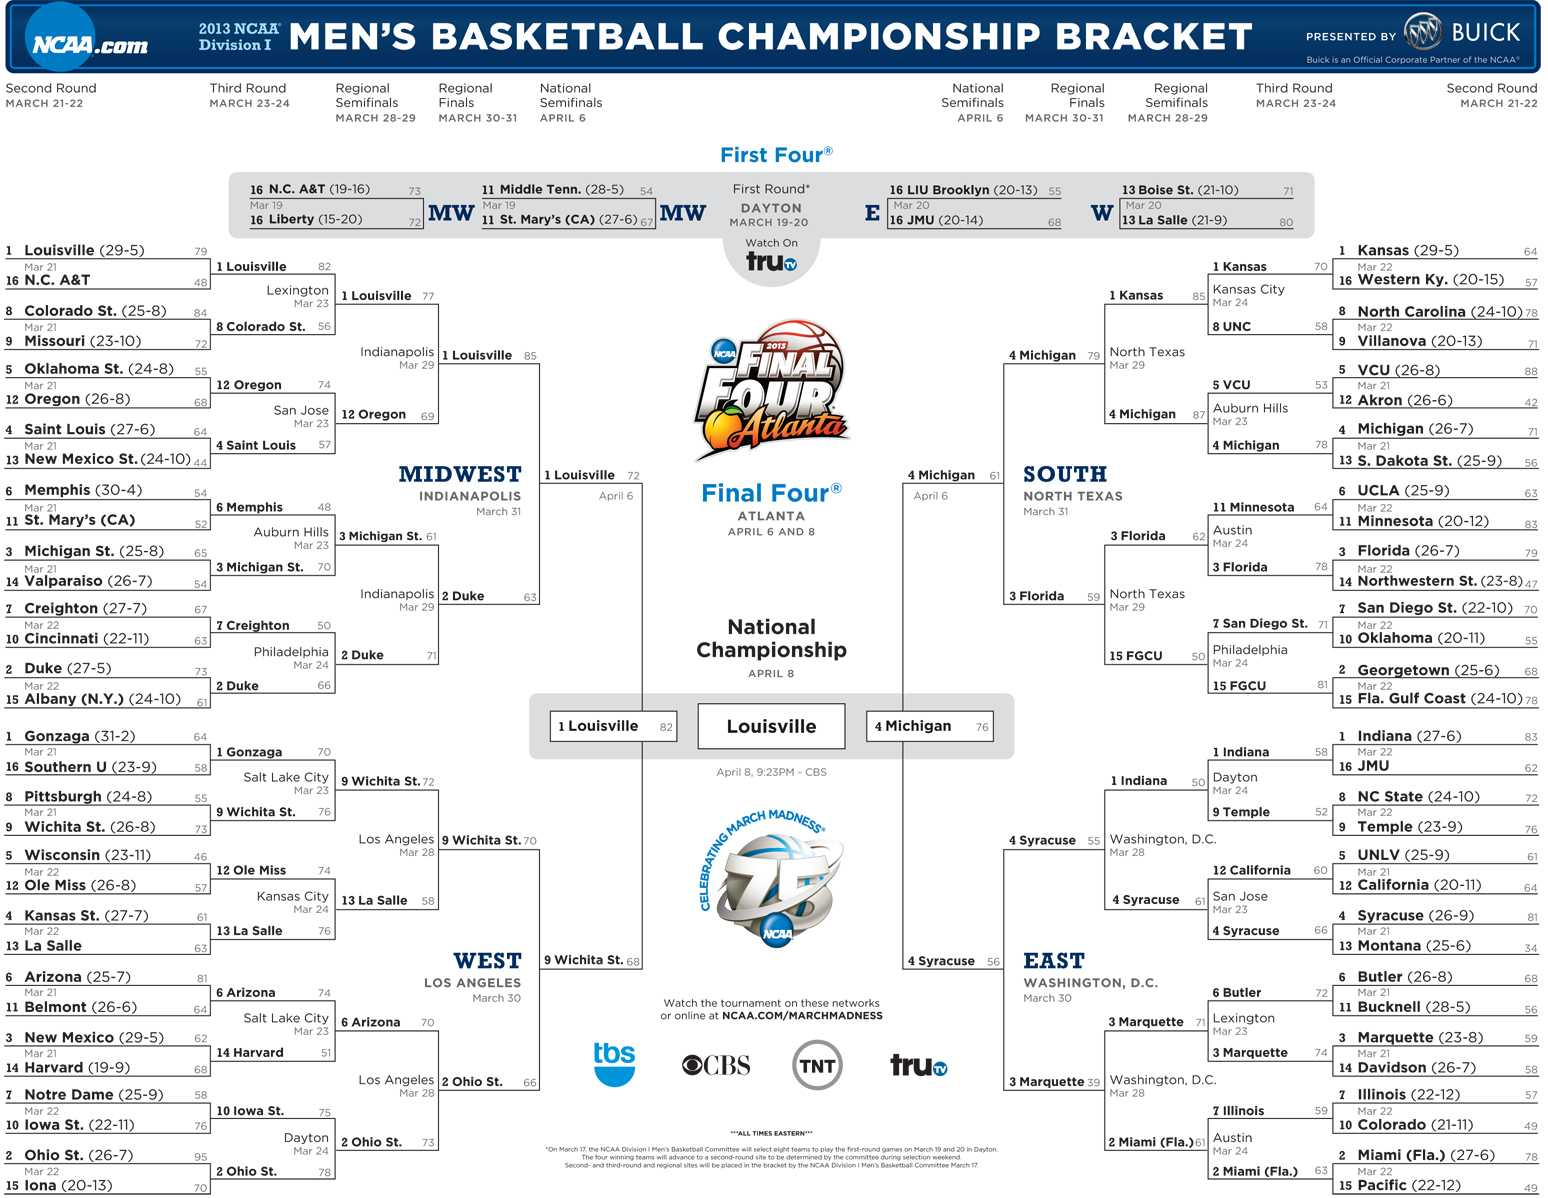 The Problem with March Madness